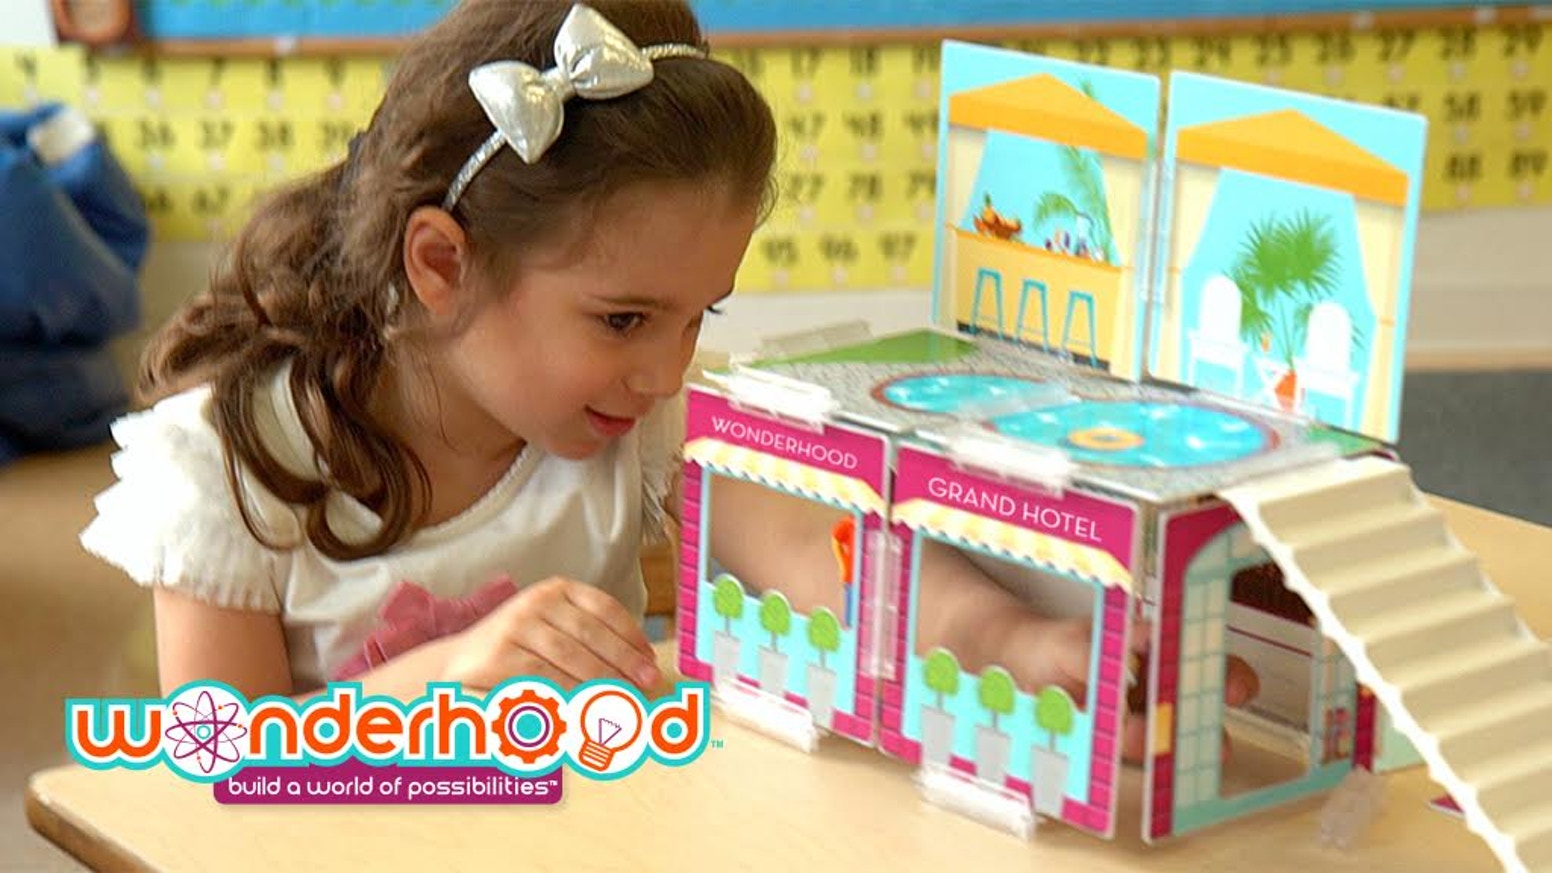 Imaginative Toys For Girls : Wonderhood building toys for girls who break the mold by